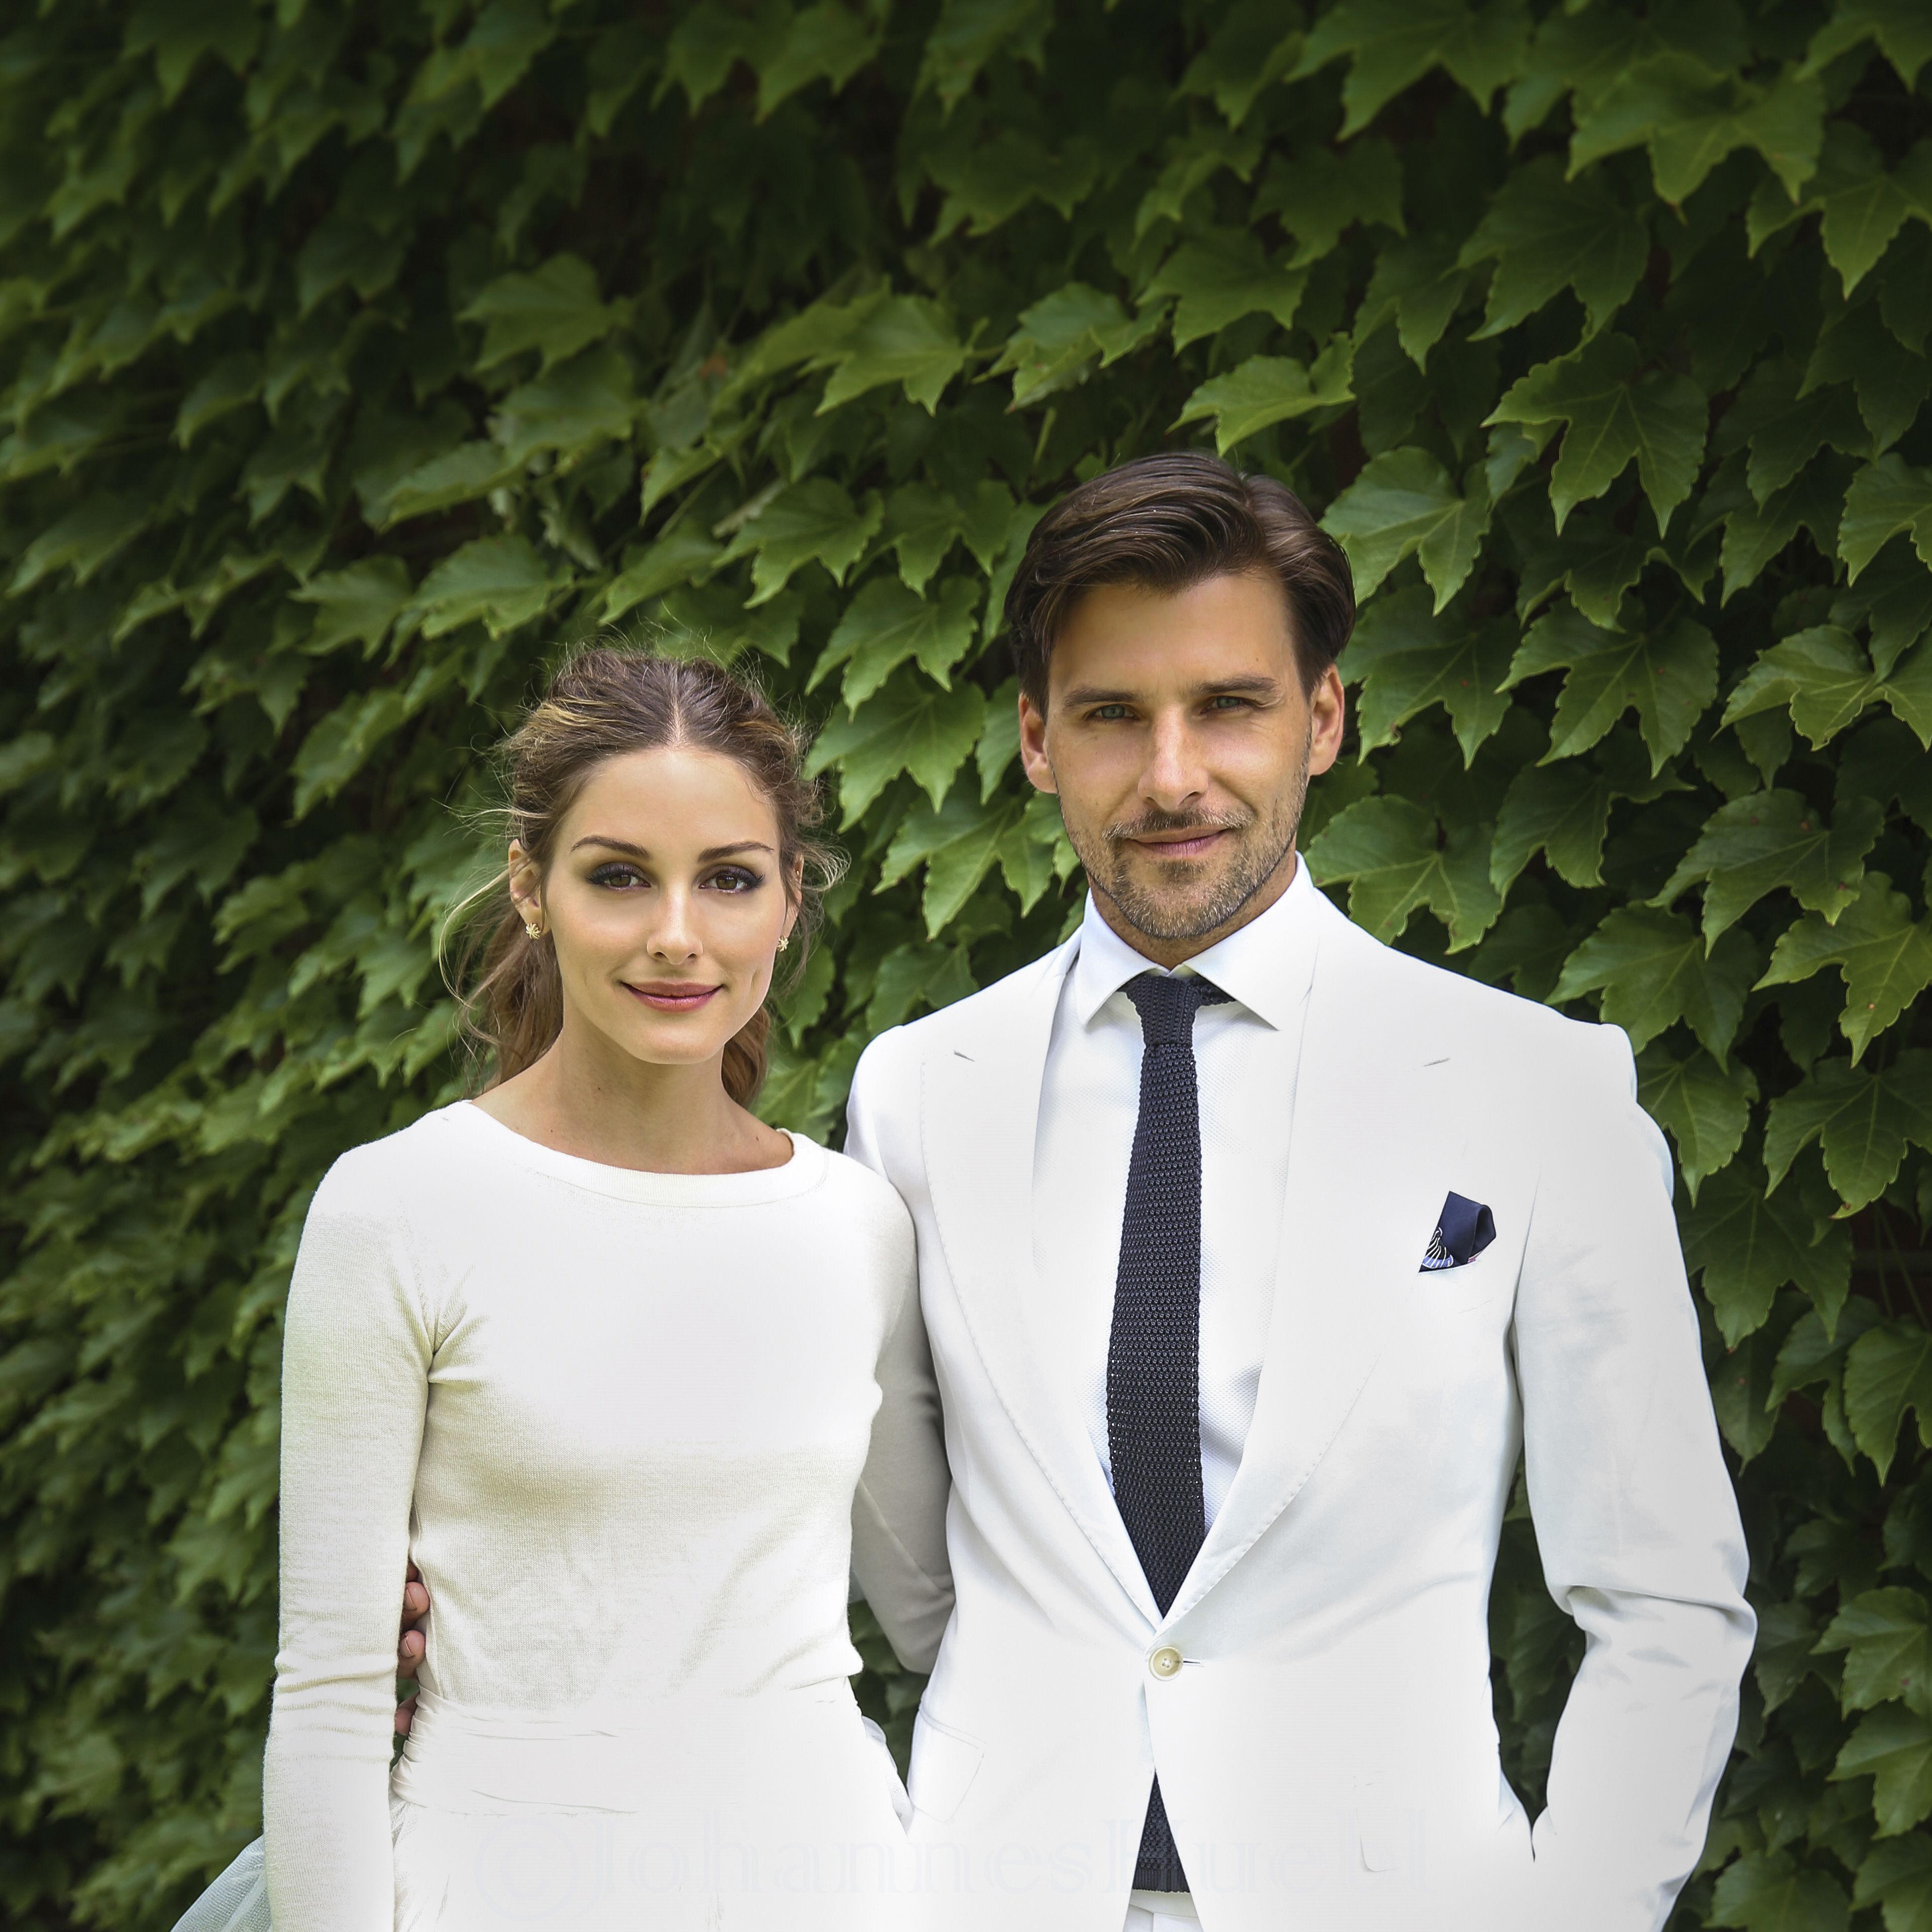 Totally reinventing our idea of bridal beauty, Olivia Palermo nailed it on her wedding day to Johannes Huebl wearing a fine cream knit and white skirt.